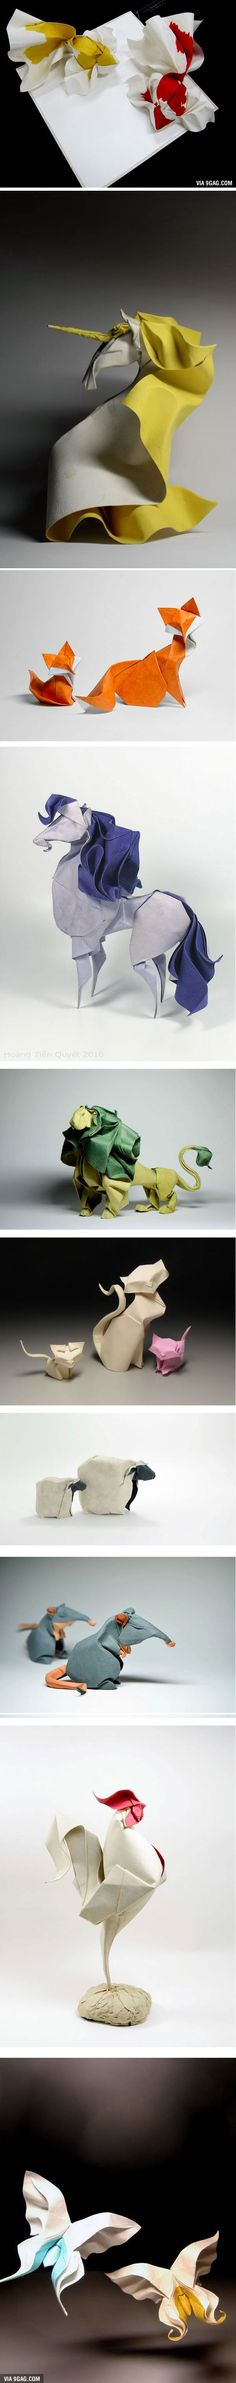 """Artist Creates Incredibly Realistic Animal Origami Using """"Wet-Folding"""" Skills (By Hoàng Tiến Quyết)"""